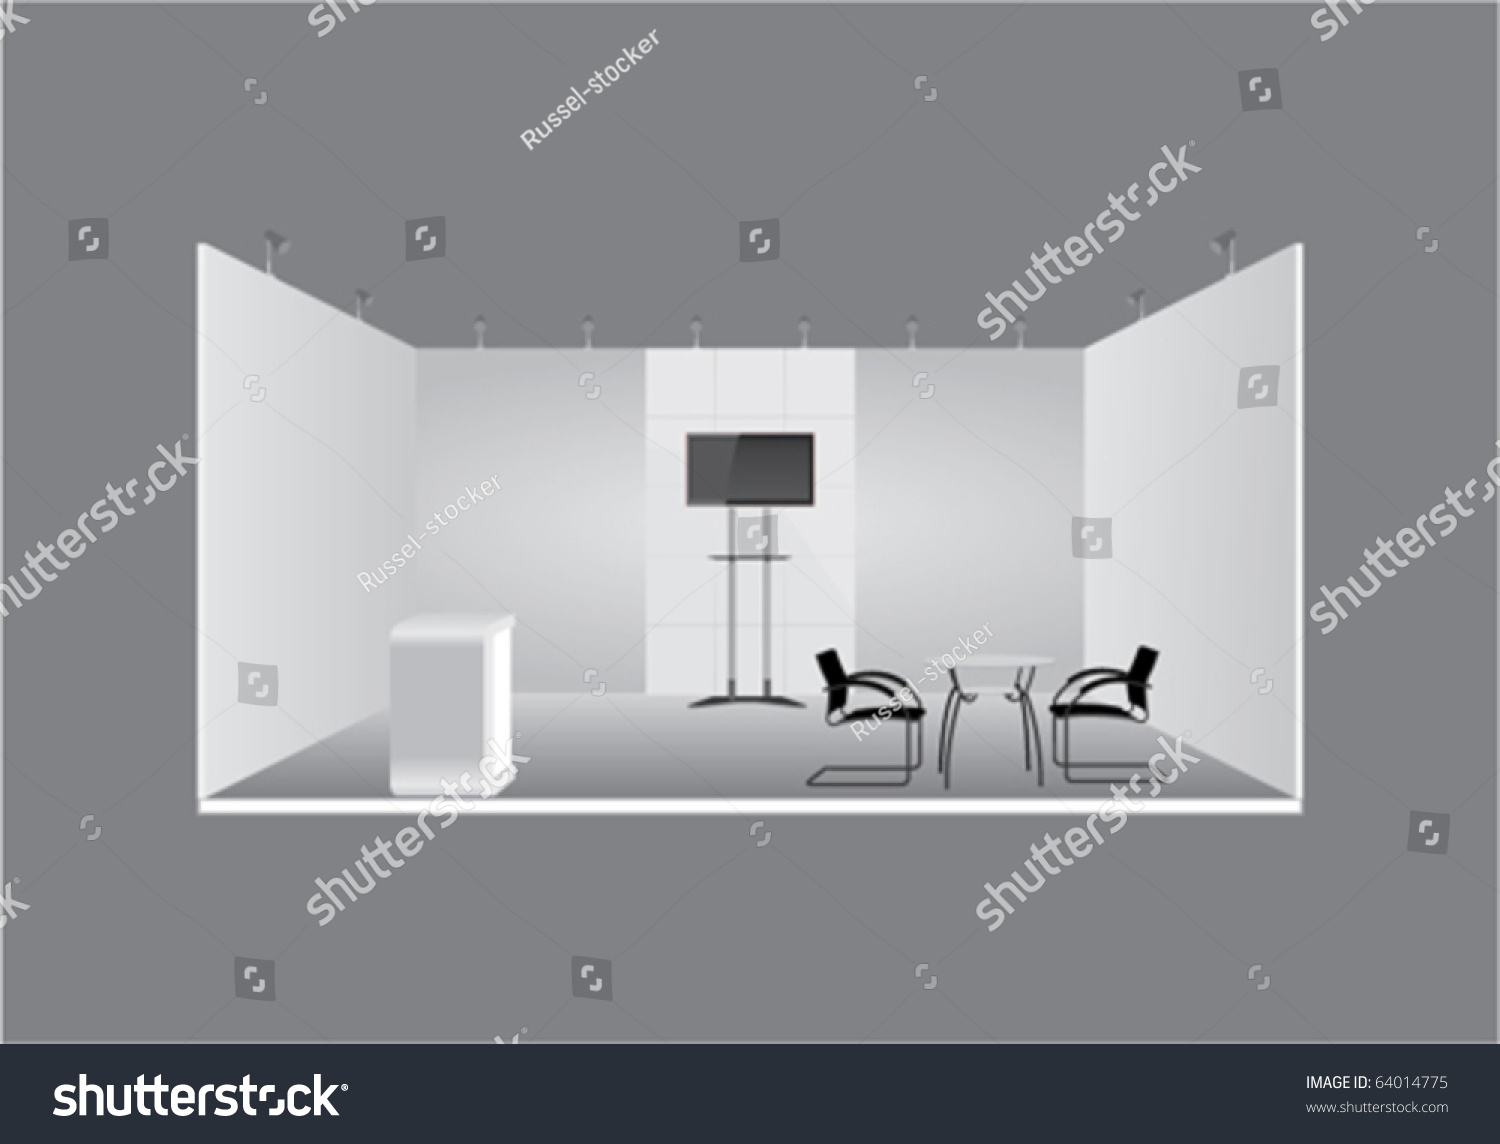 Exhibition Stand Design Vector : Vector d exhibition stand display stock